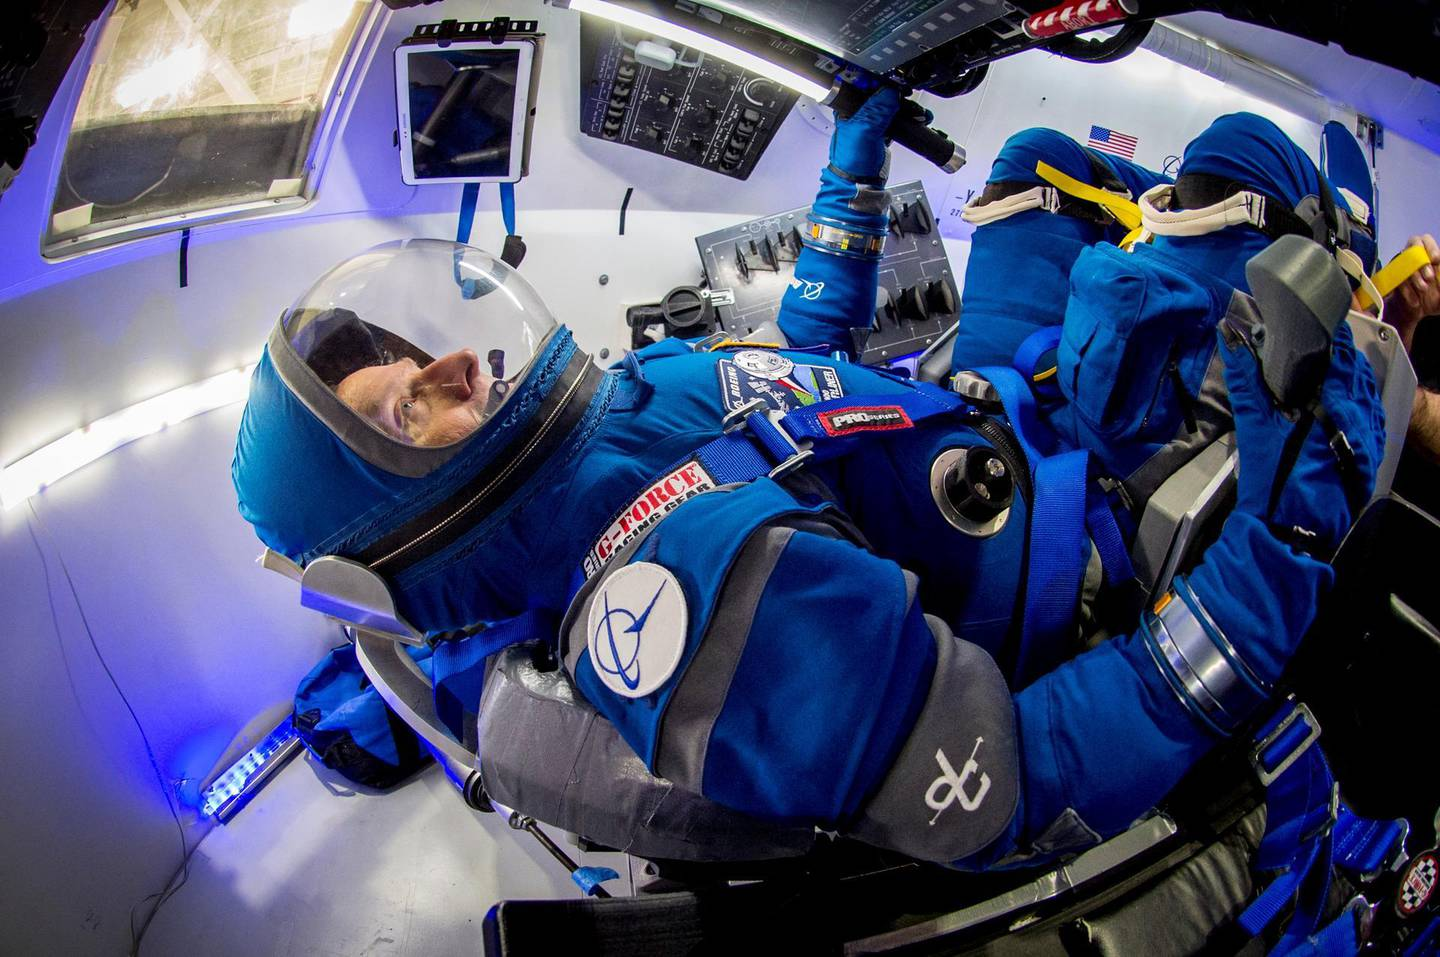 CST-100 Starliner Space Suit_Ingress Egress Test with Capsule_Chris Ferguson_Additional Astronauts_NASA Kennedy Space Center_MCF16-0049 Series_RMS#294422_8/2/2016